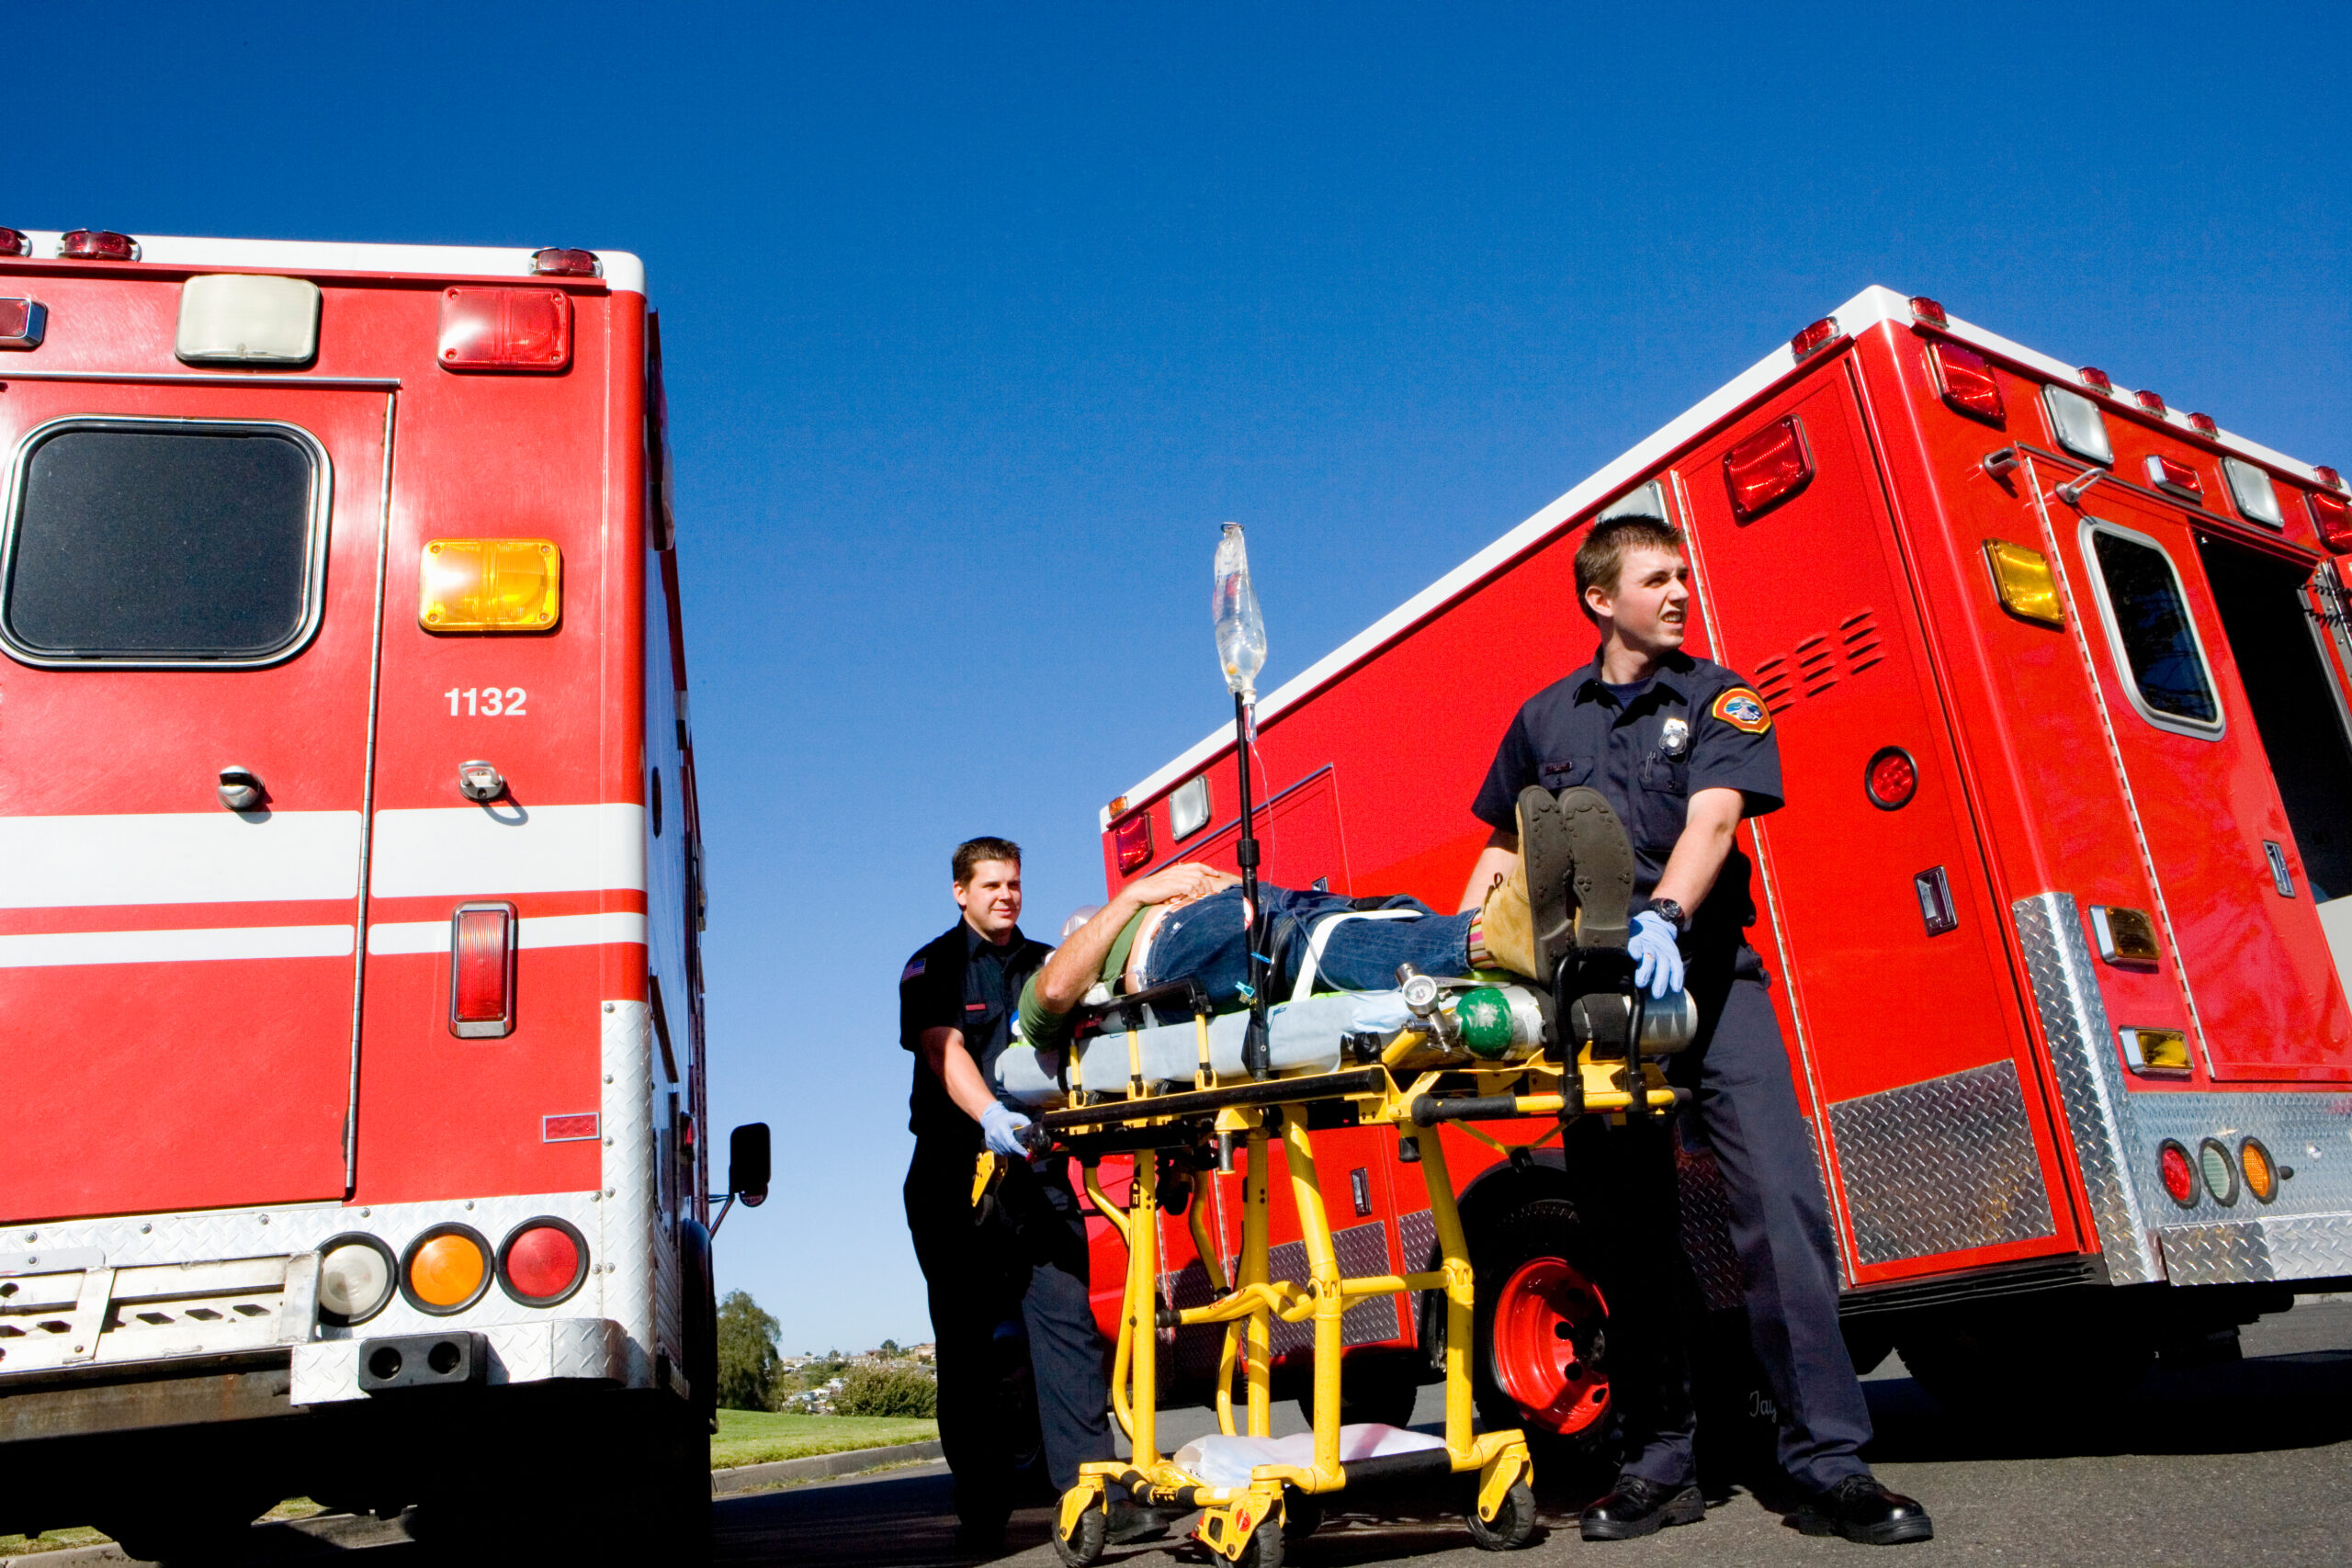 Paramedics with a patient on a stretcher